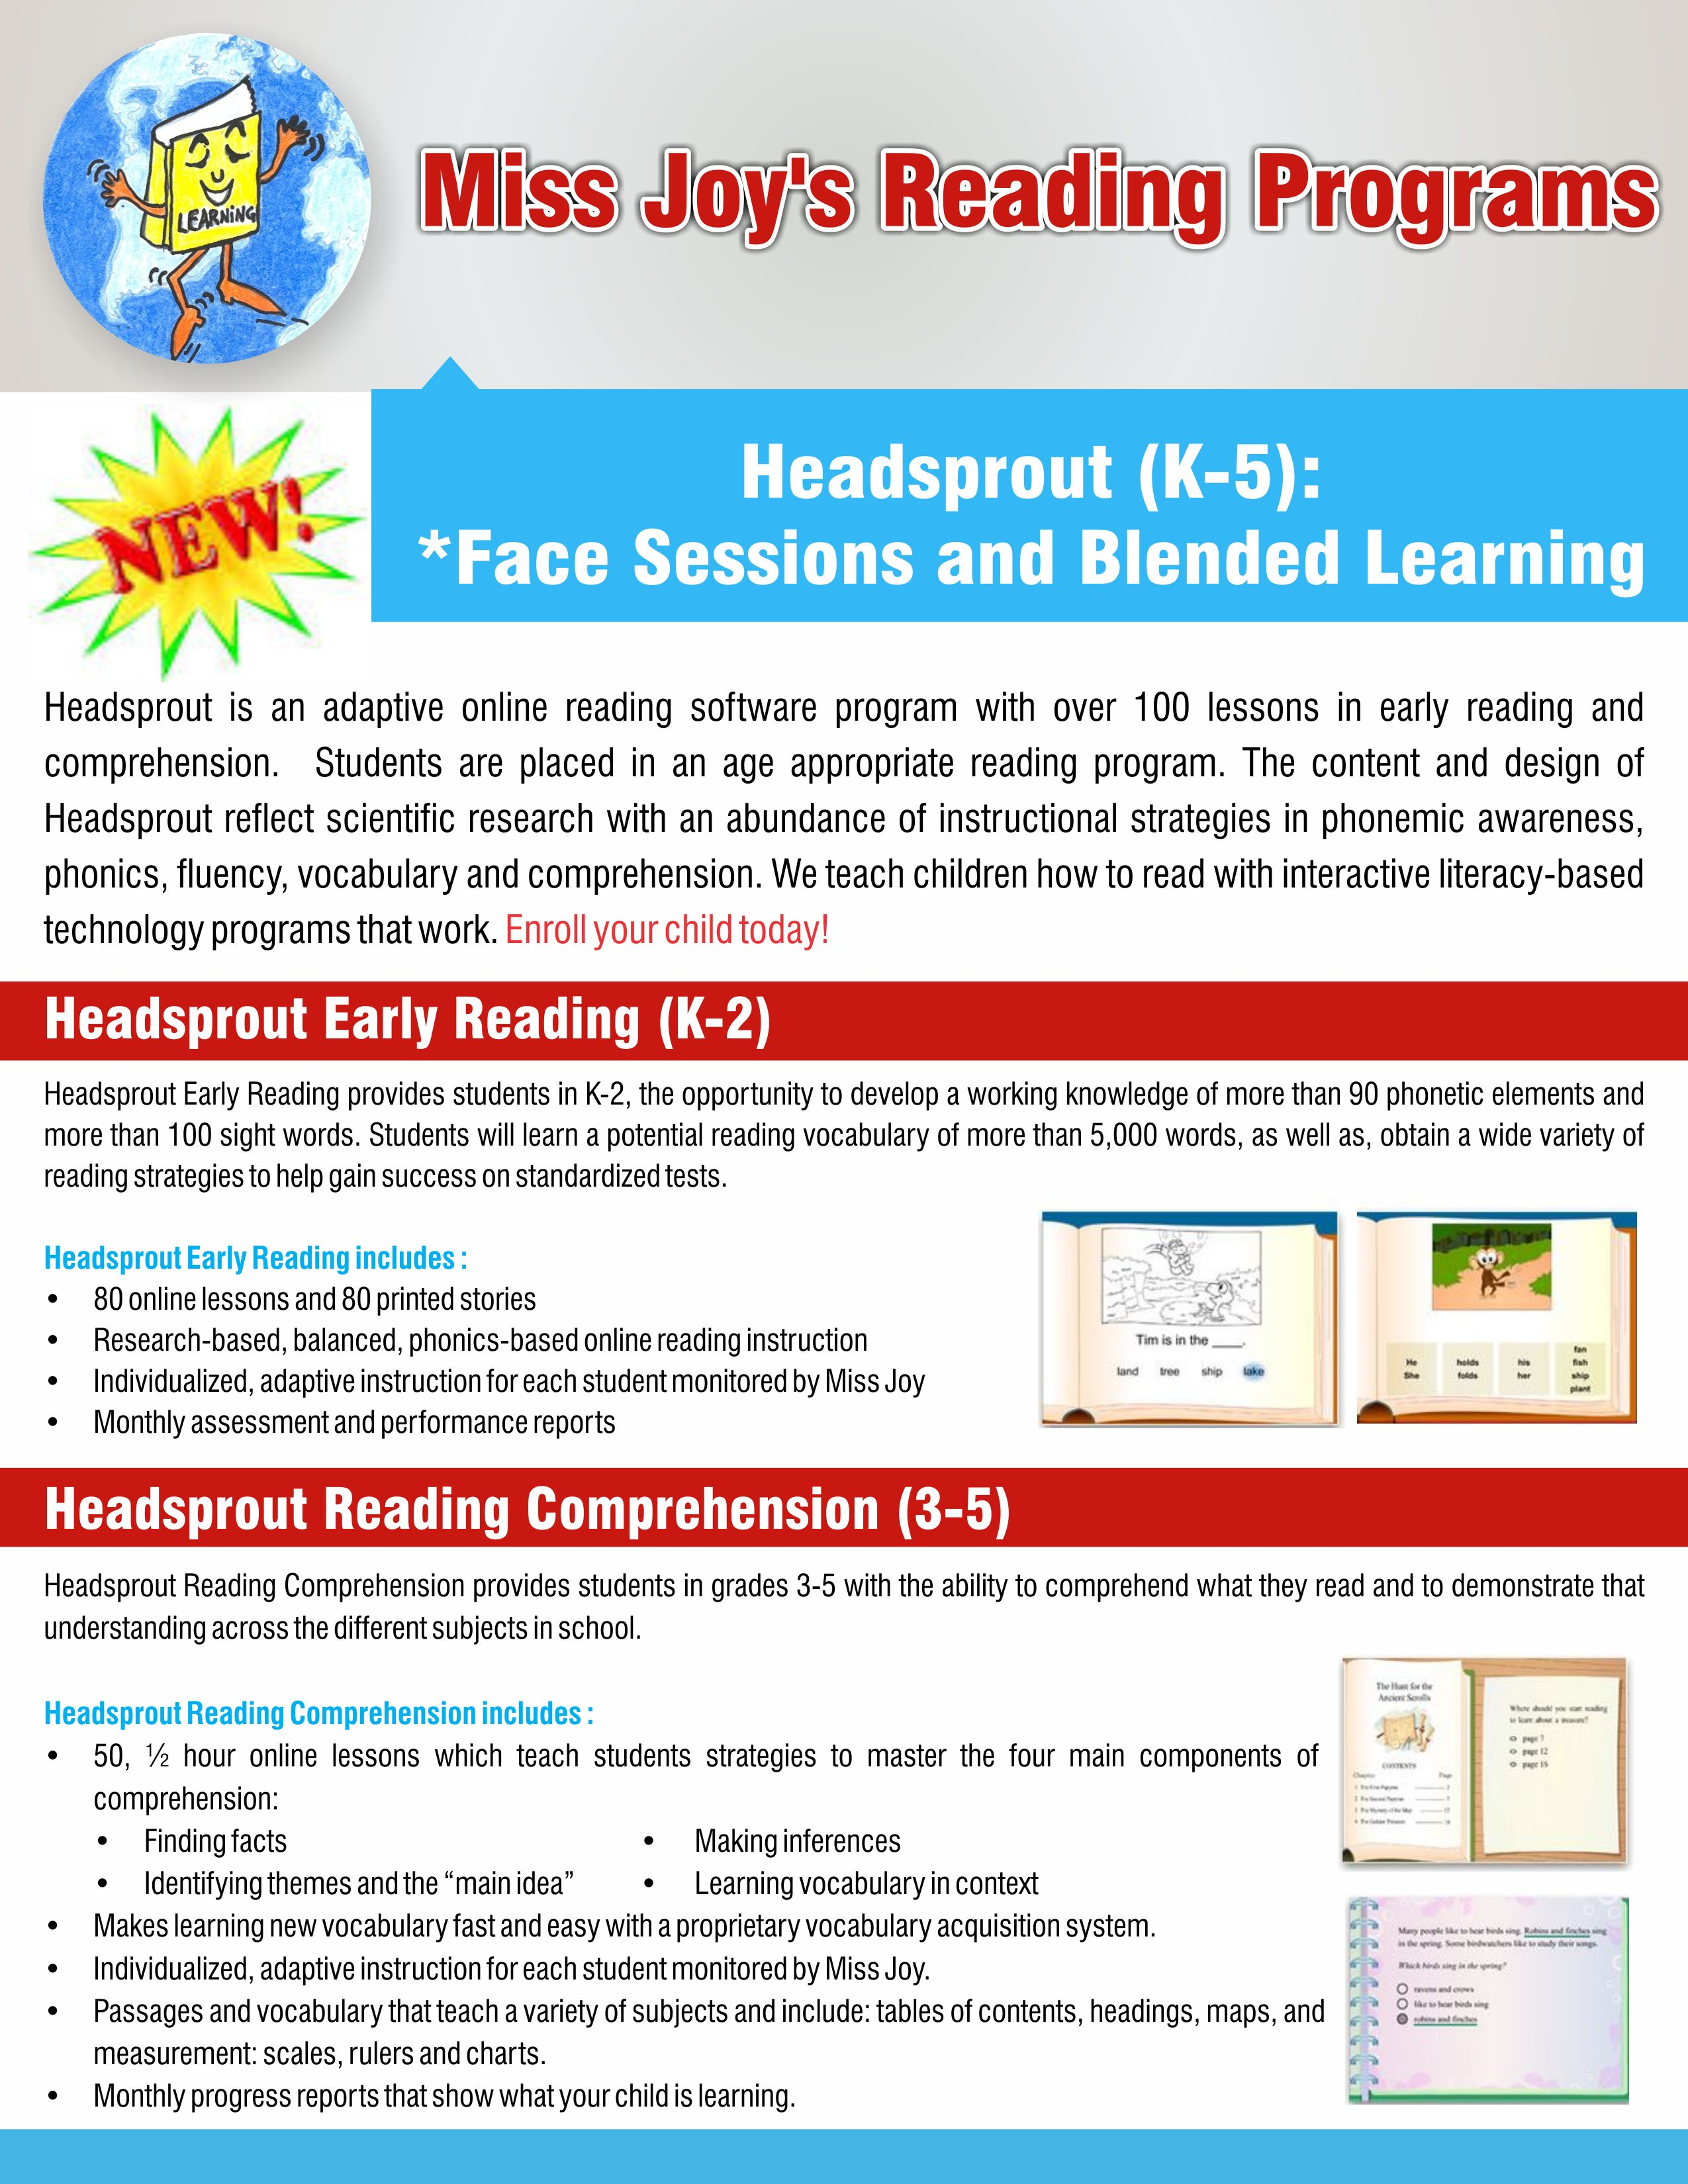 Worksheet Reading Comprehension Program english literacy learning services individuals original headsprout early reading k 2 uses patented technology that allows adaptive online instruction the program provides hun